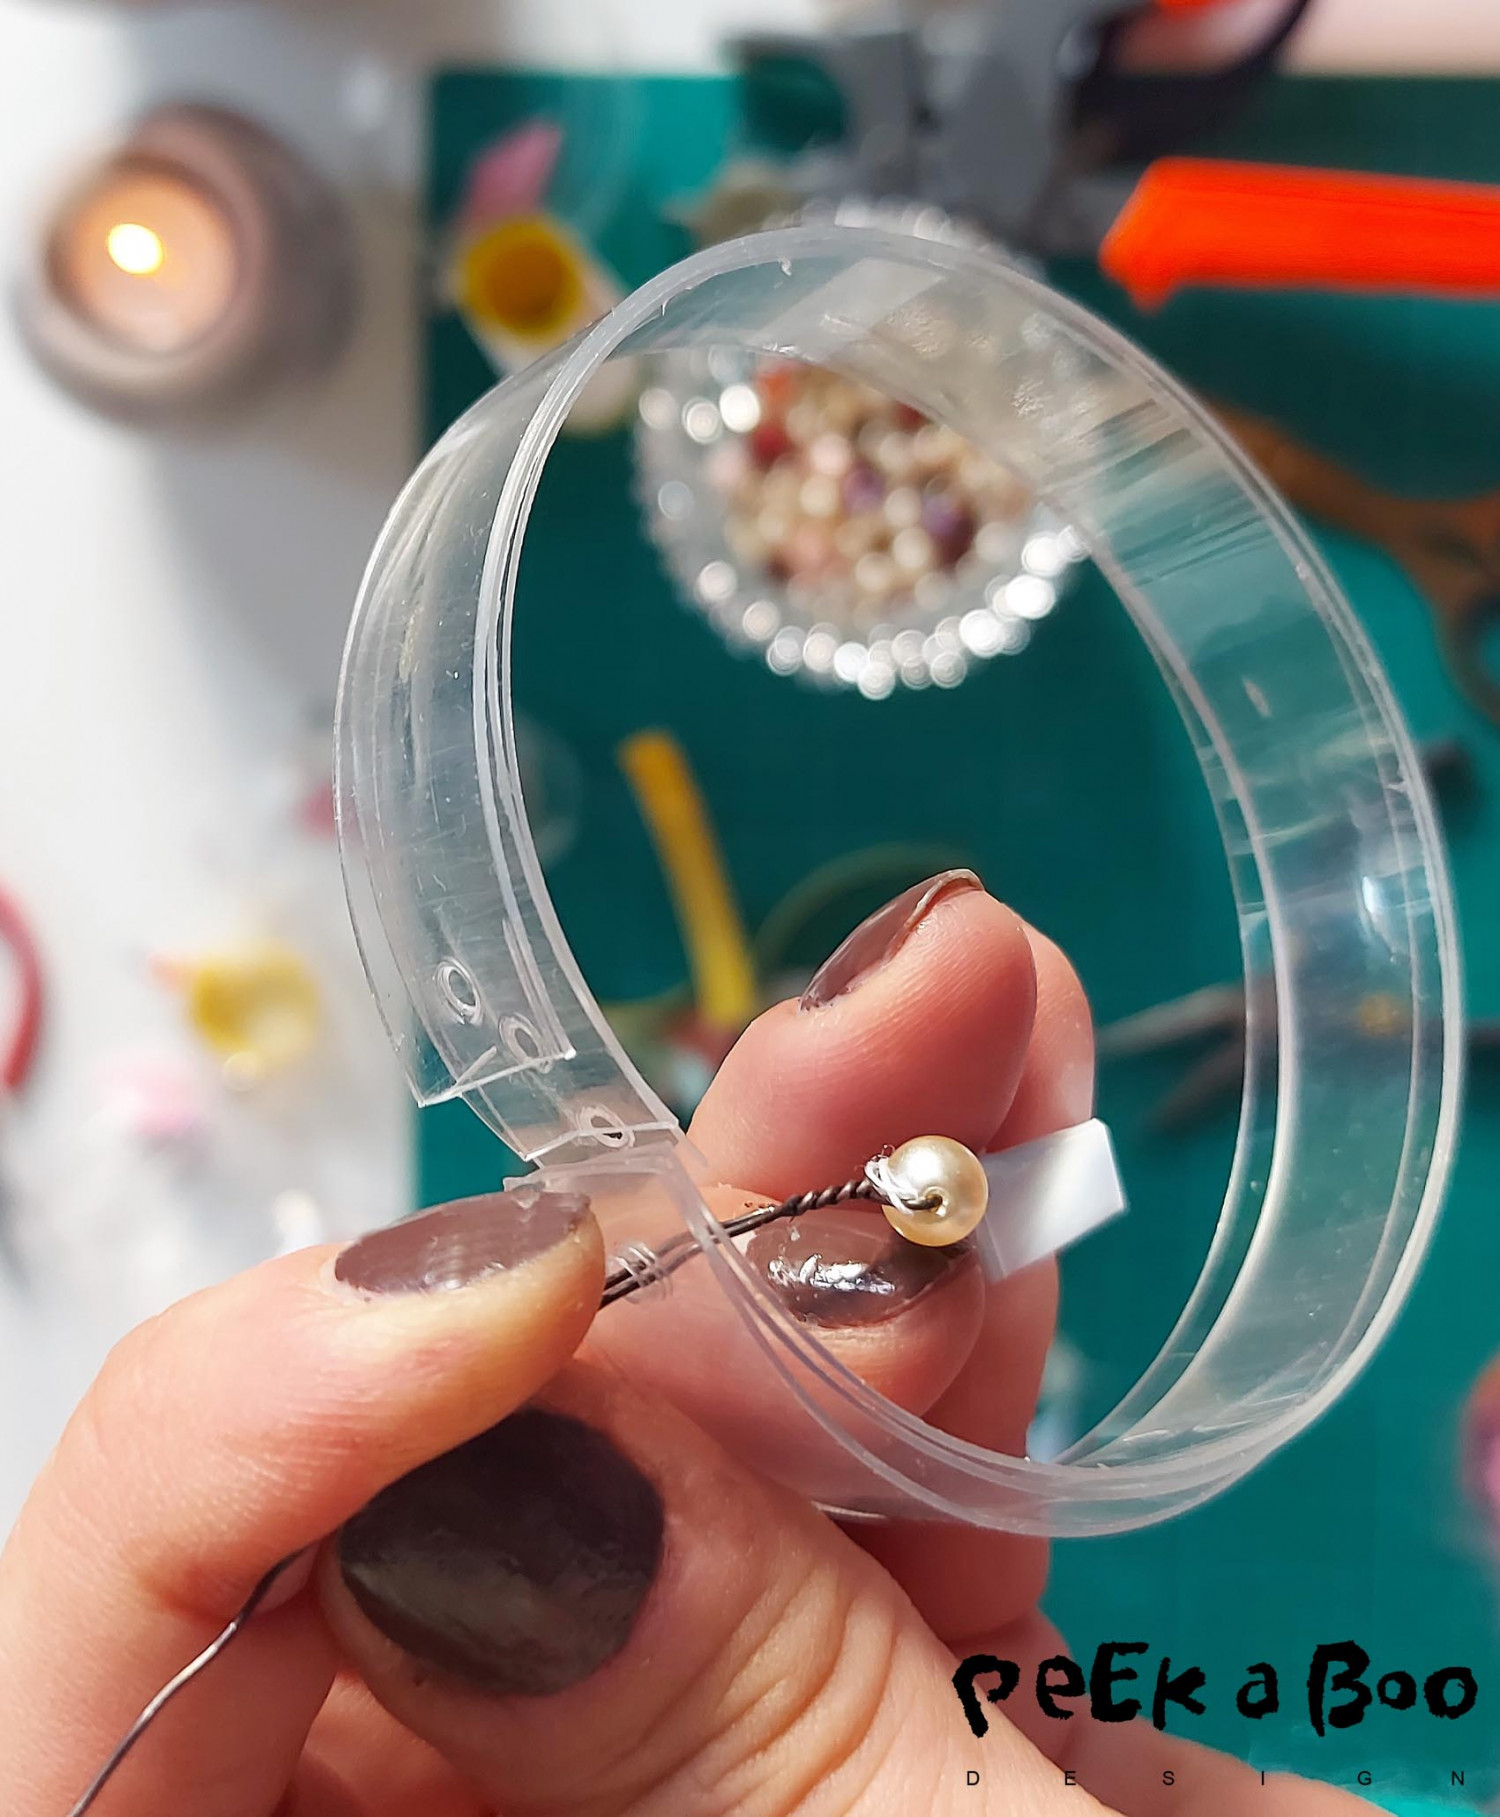 Pull the metal thread through the plastic rings to measure that the get the correct length. Cut the other ends so they are matching inside each other.